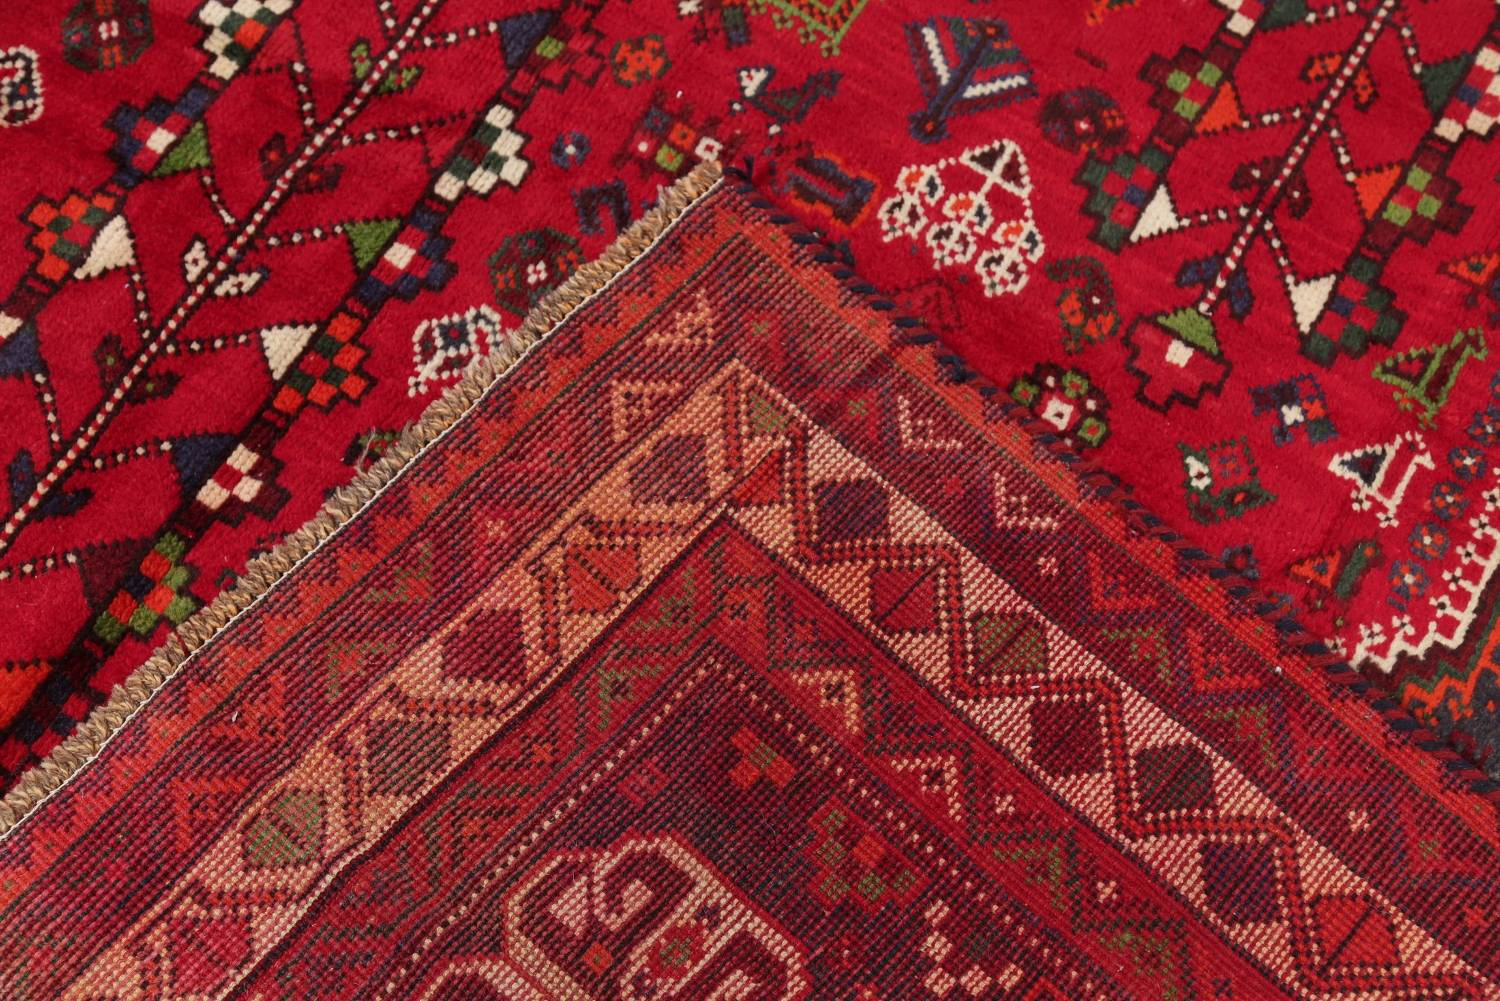 One-of-a-Kind Antique Tribal Shiraz Persian Hand-Knotted 7x10 Wool Area Rug image 4